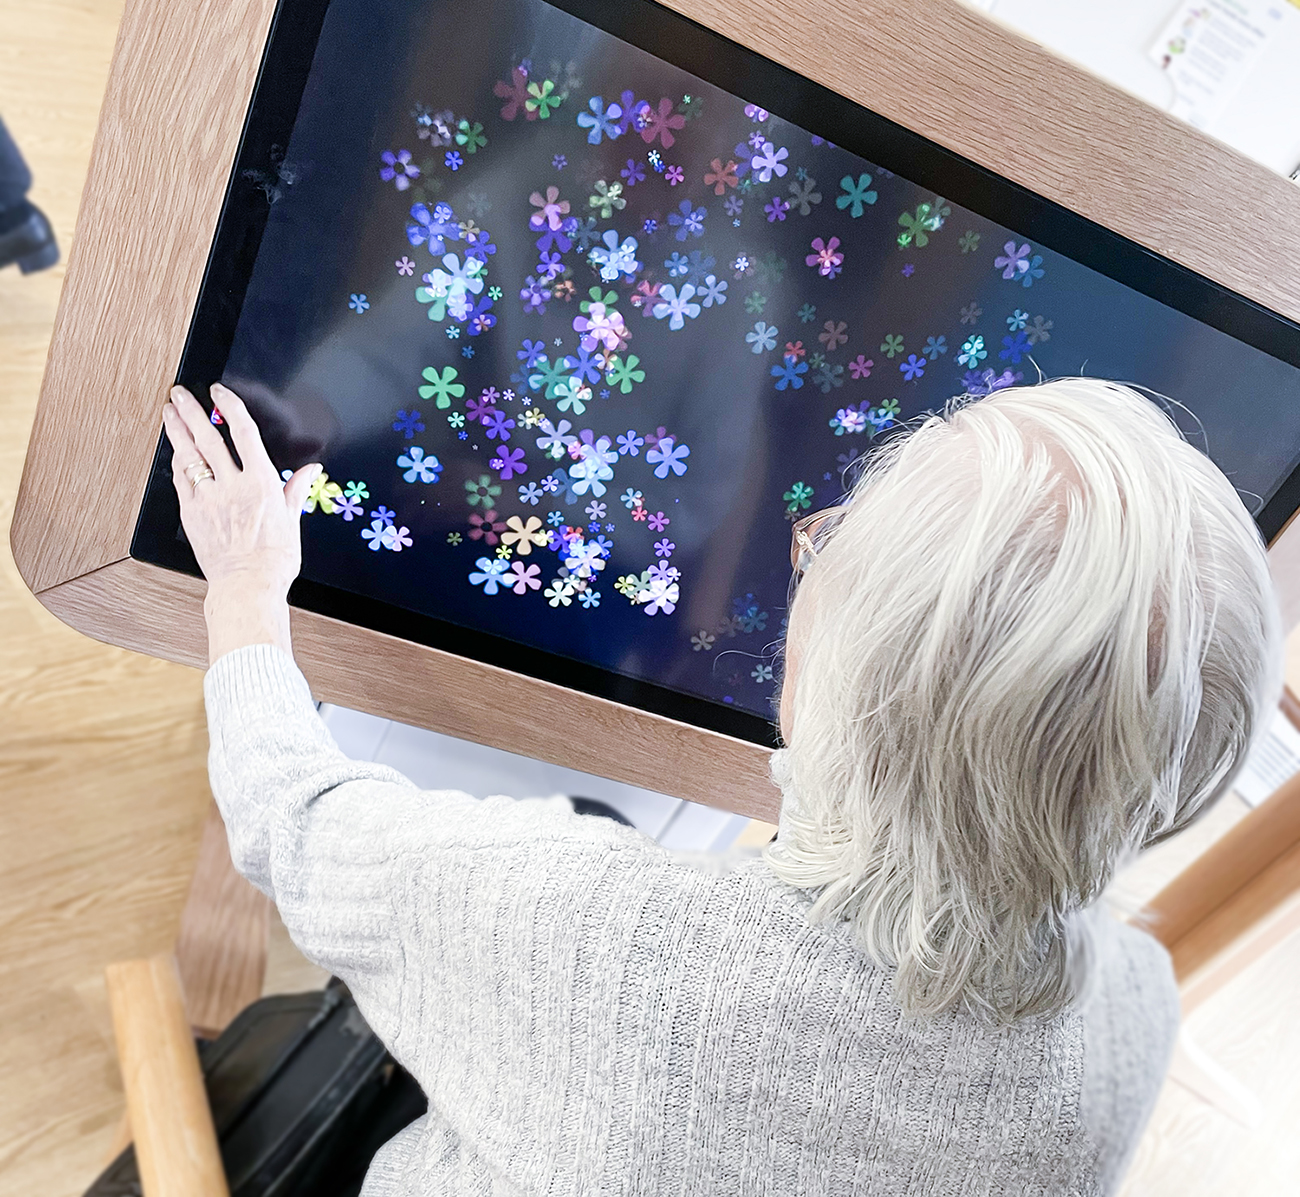 International Day of Older Persons. A resident using an interactive table.